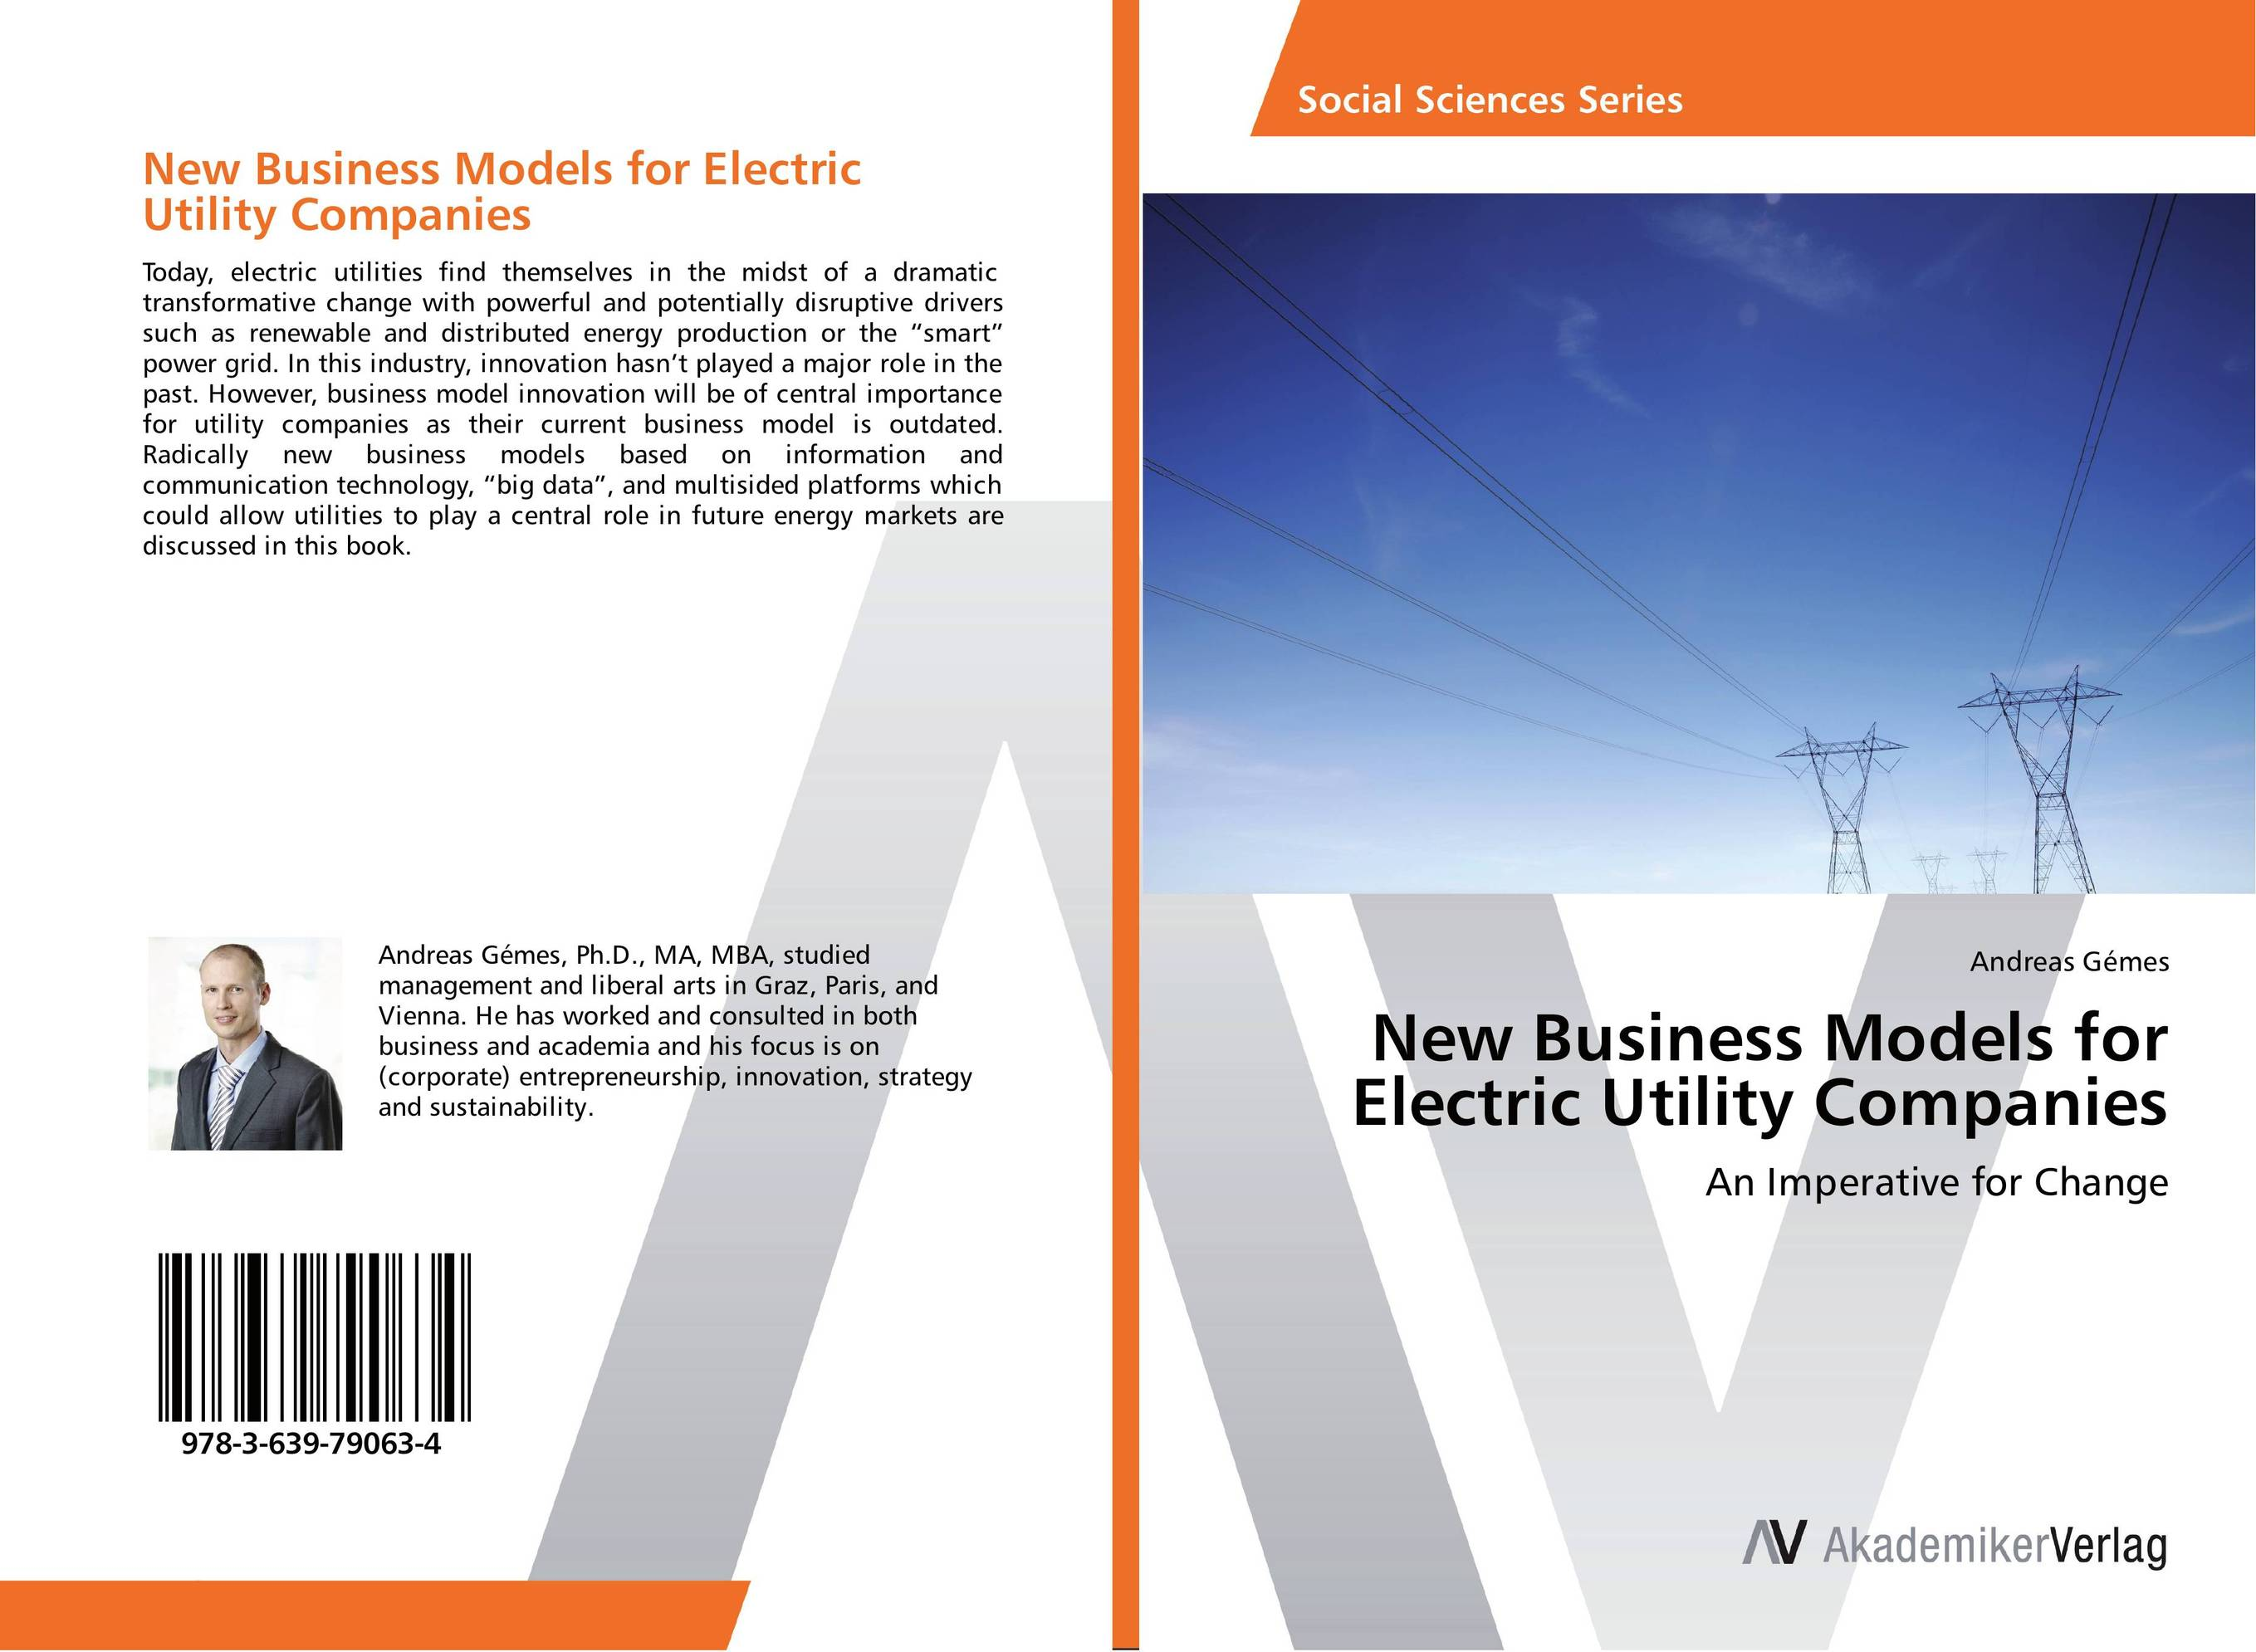 New Business Models for Electric Utility Companies theodore gilliland fisher investments on utilities